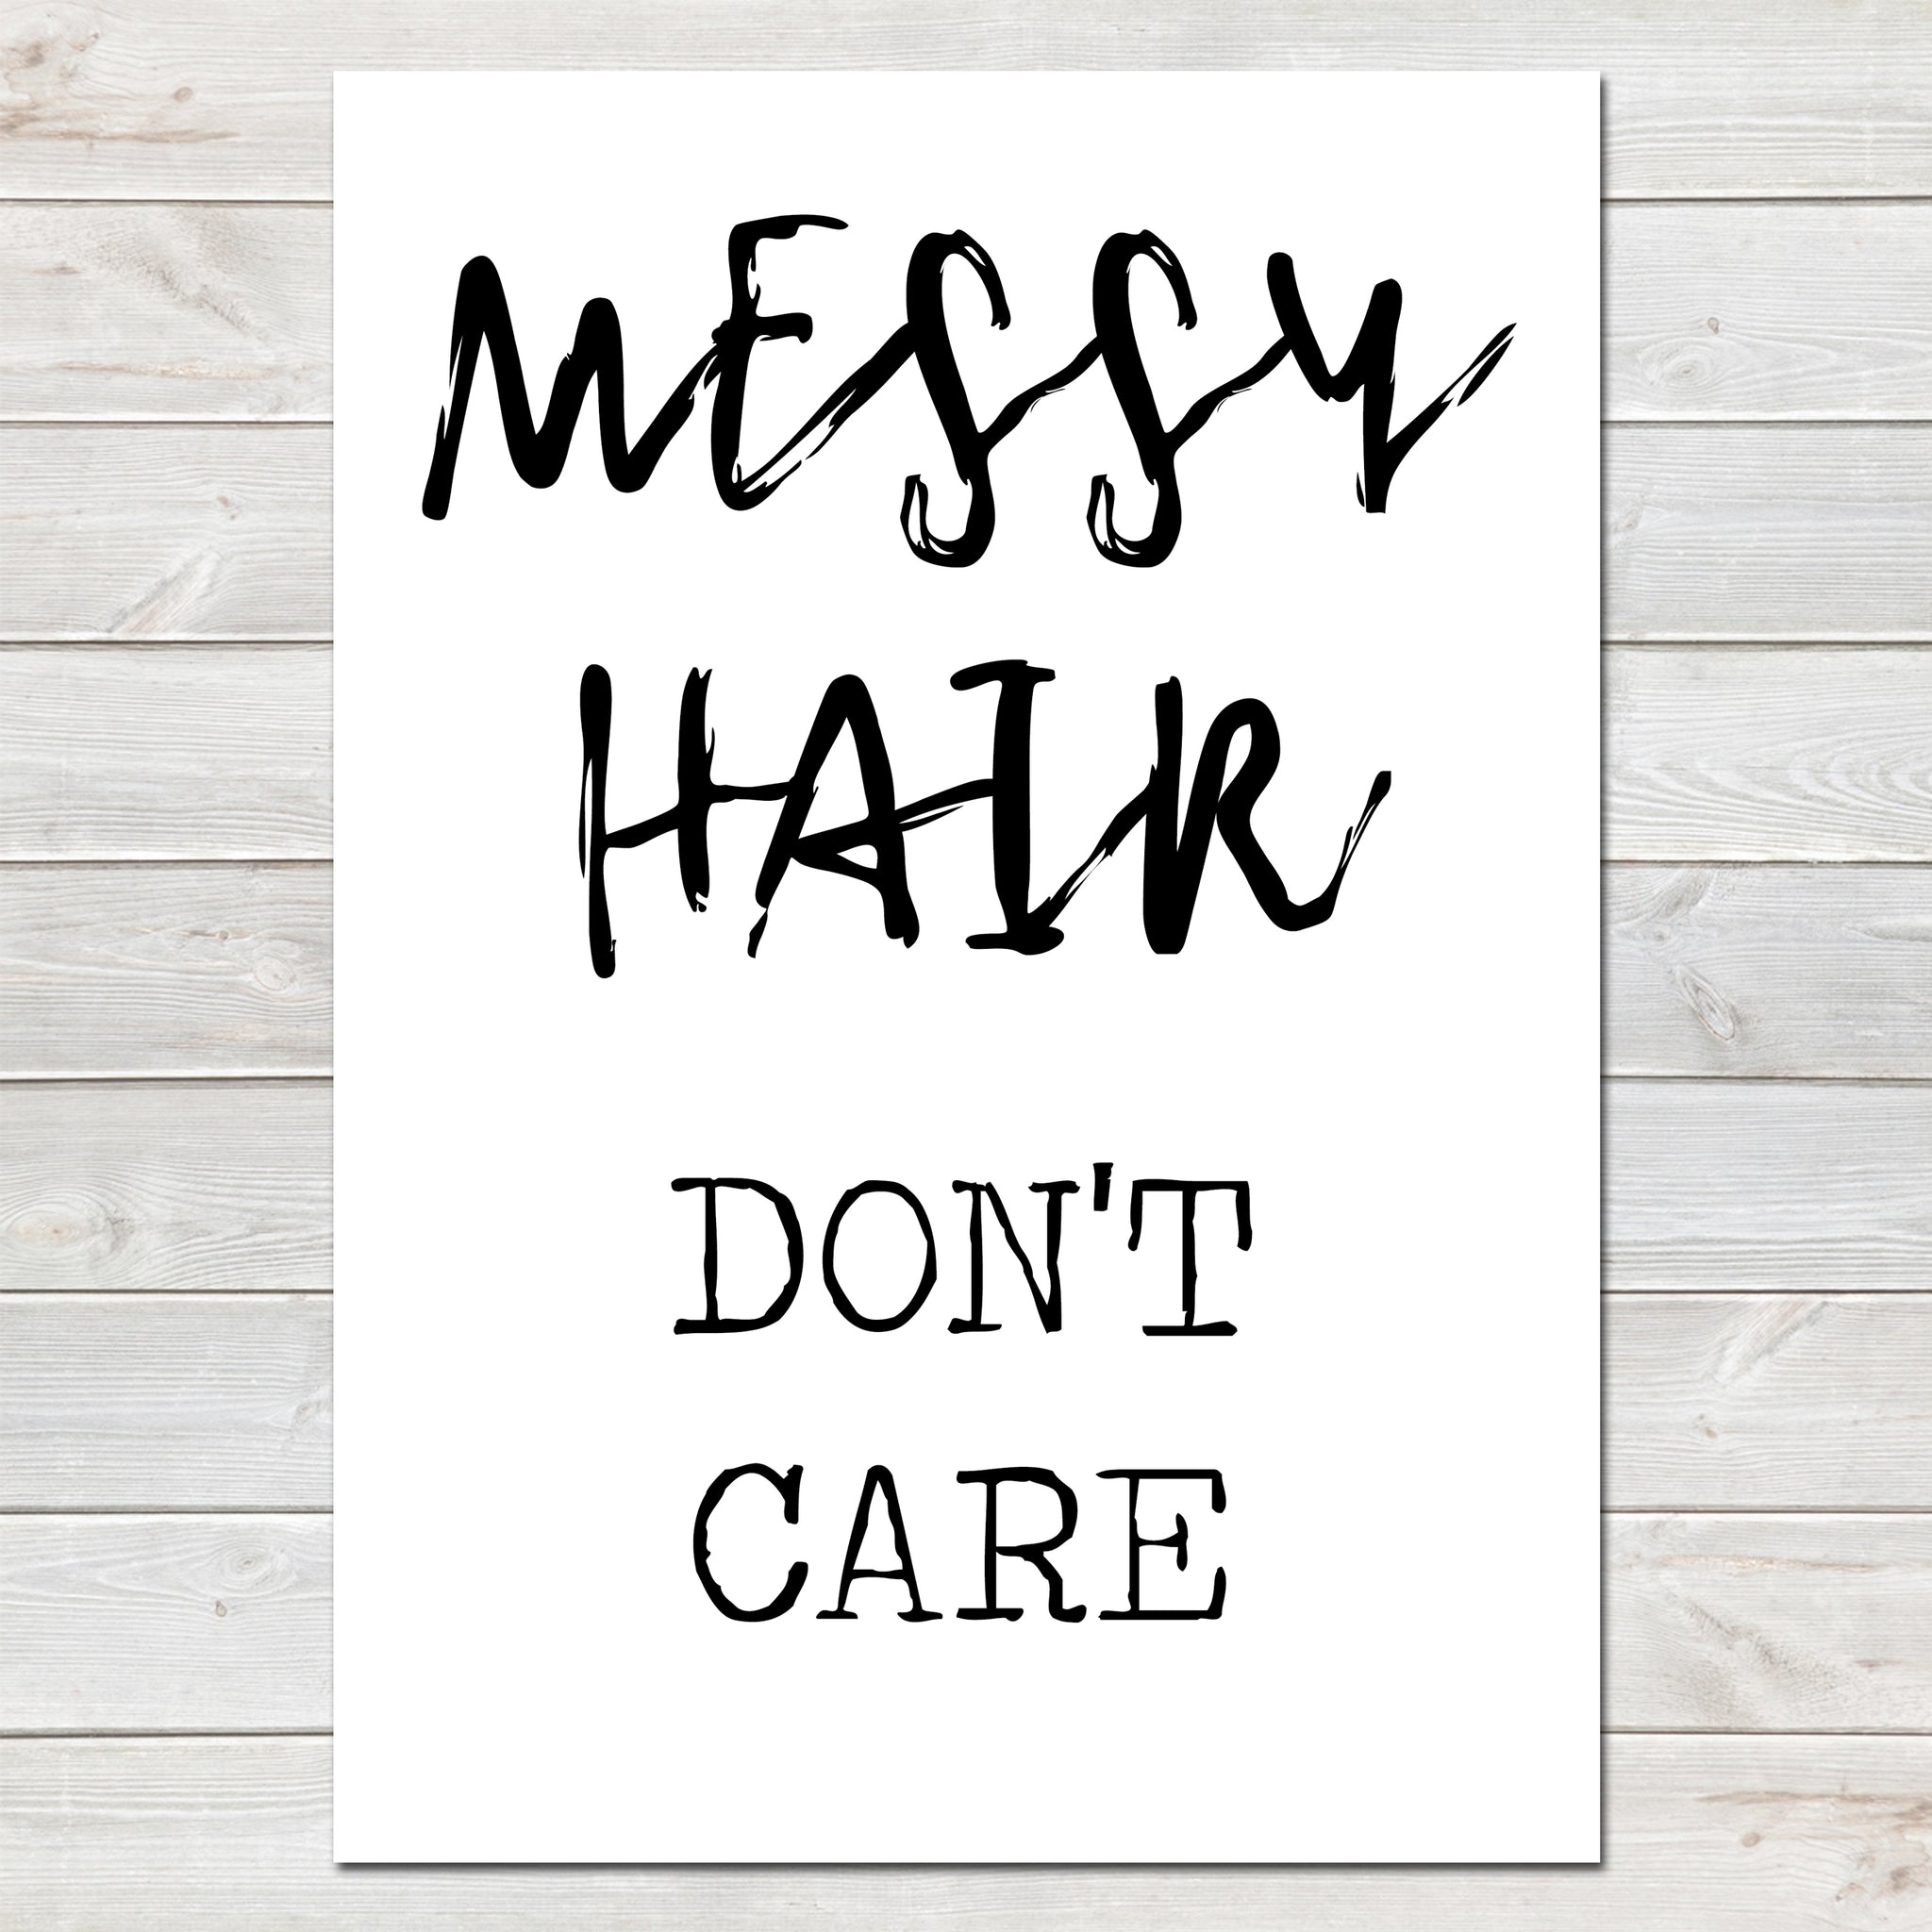 Messy Hair Don't Care, Fun Office Print, Home Decor